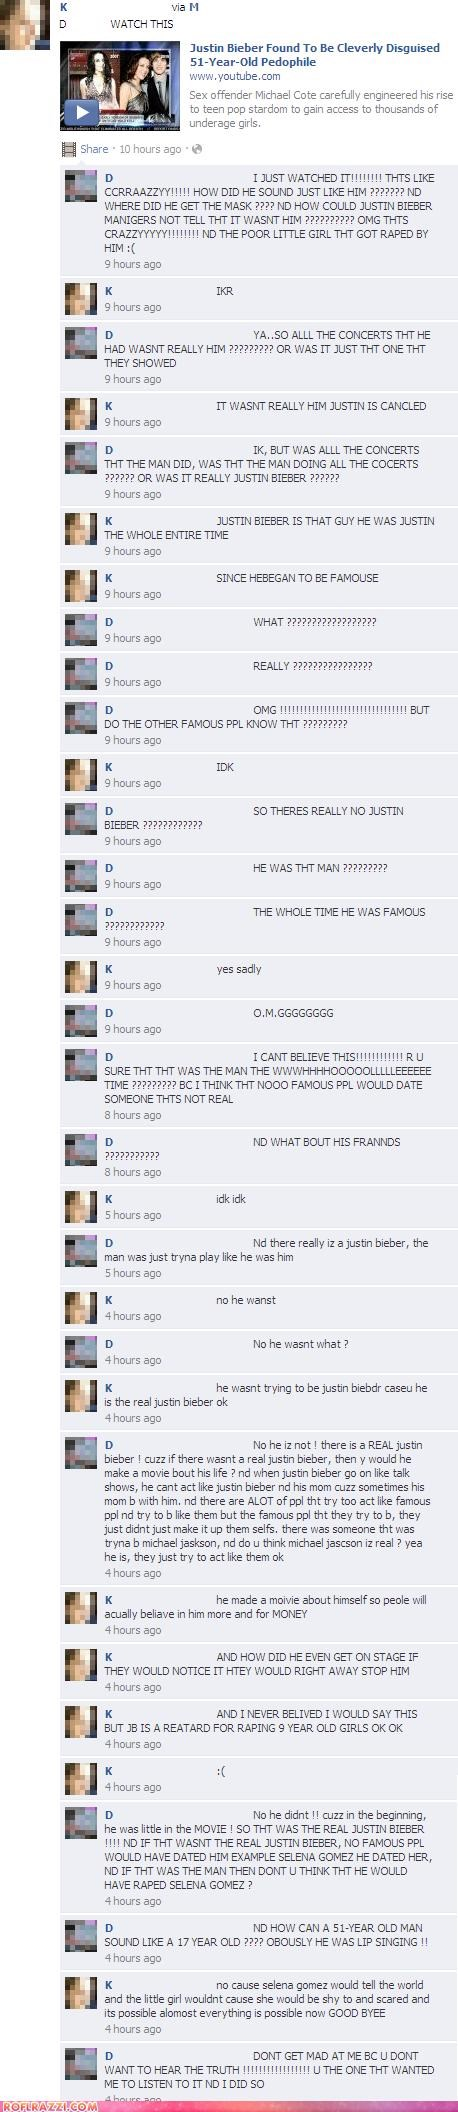 facebook,FAIL,funny,Hall of Fame,justin bieber